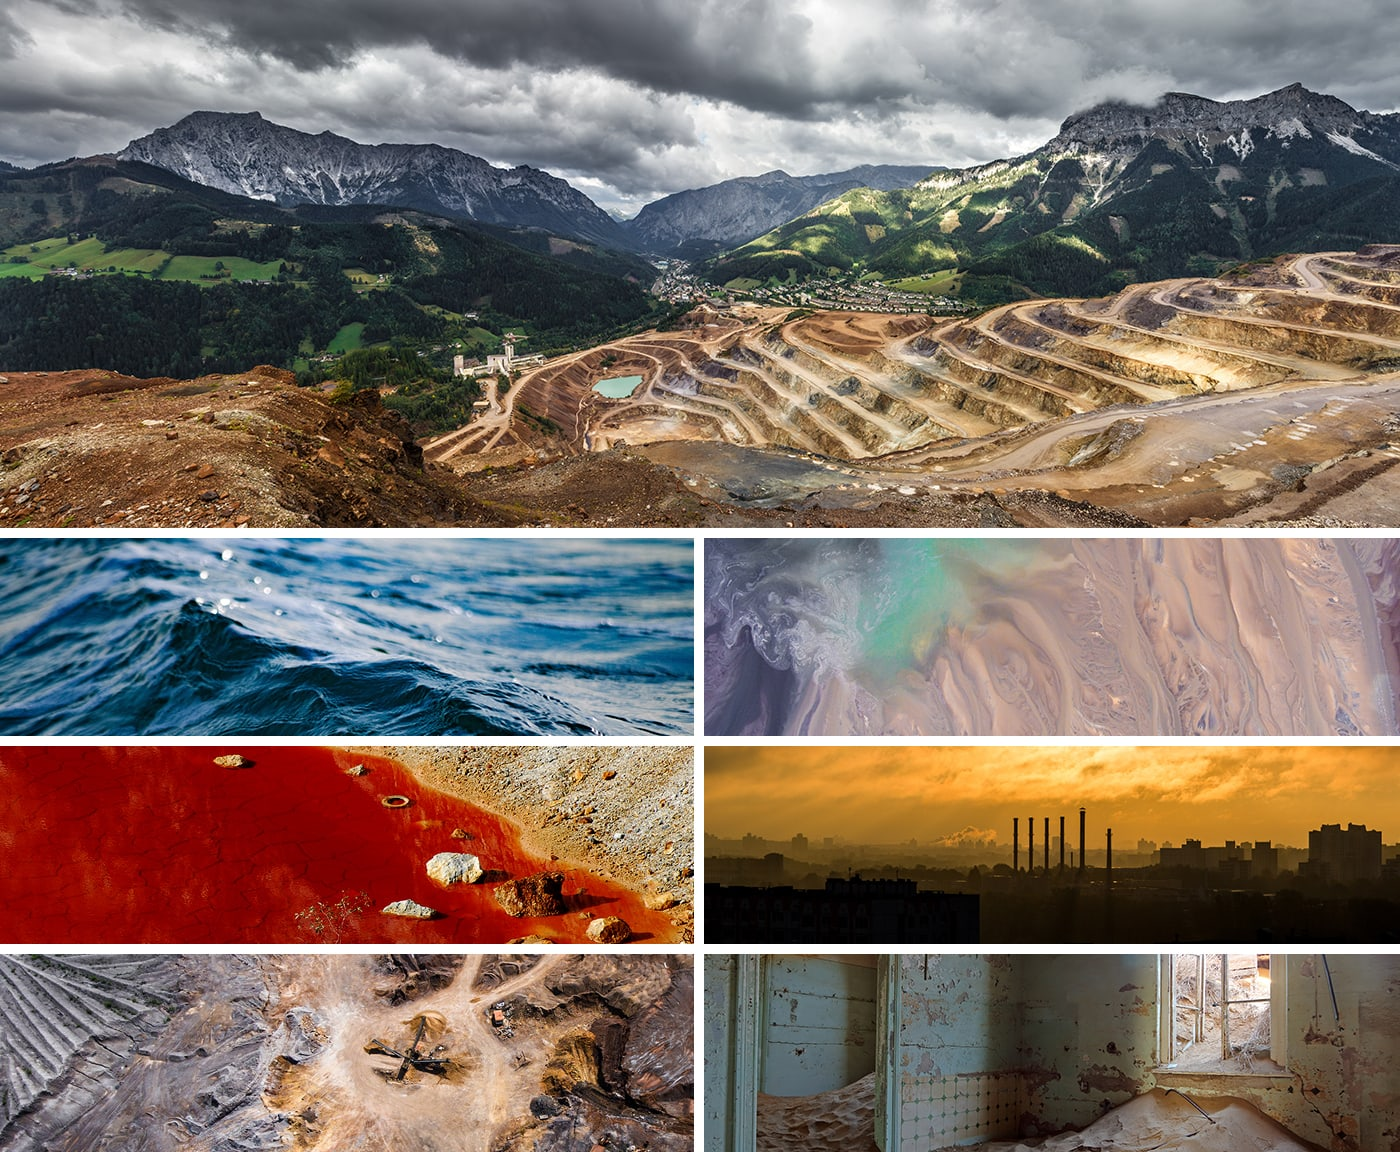 Multiple images that show the environmental devastation left behind from diamond mining.